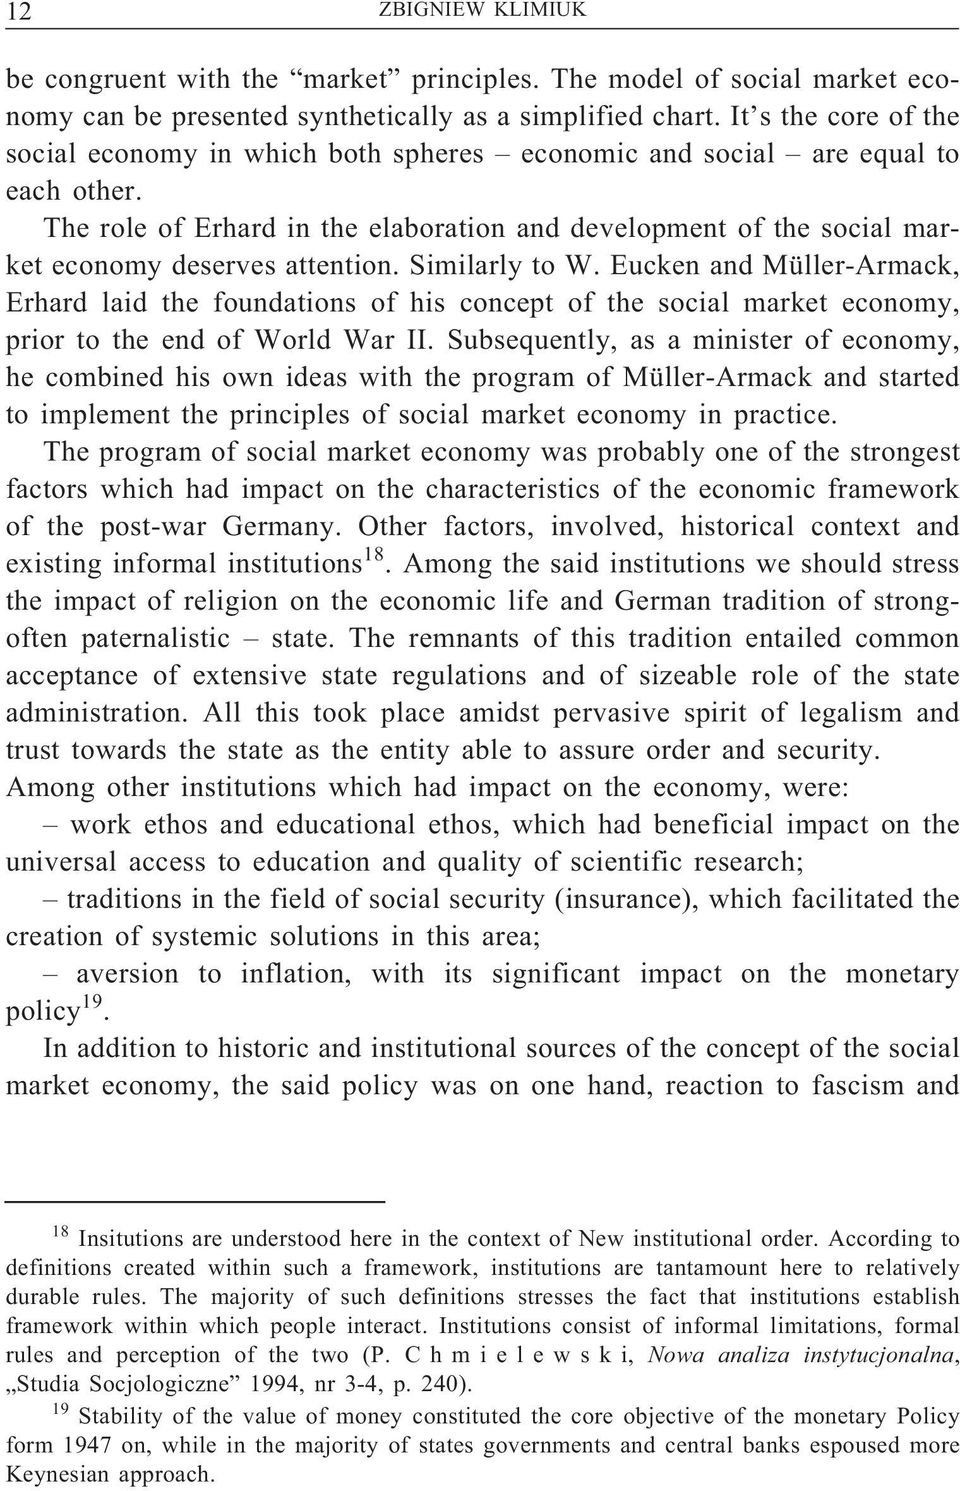 The role of Erhard in the elaboration and development of the social market economy deserves attention. Similarly to W.